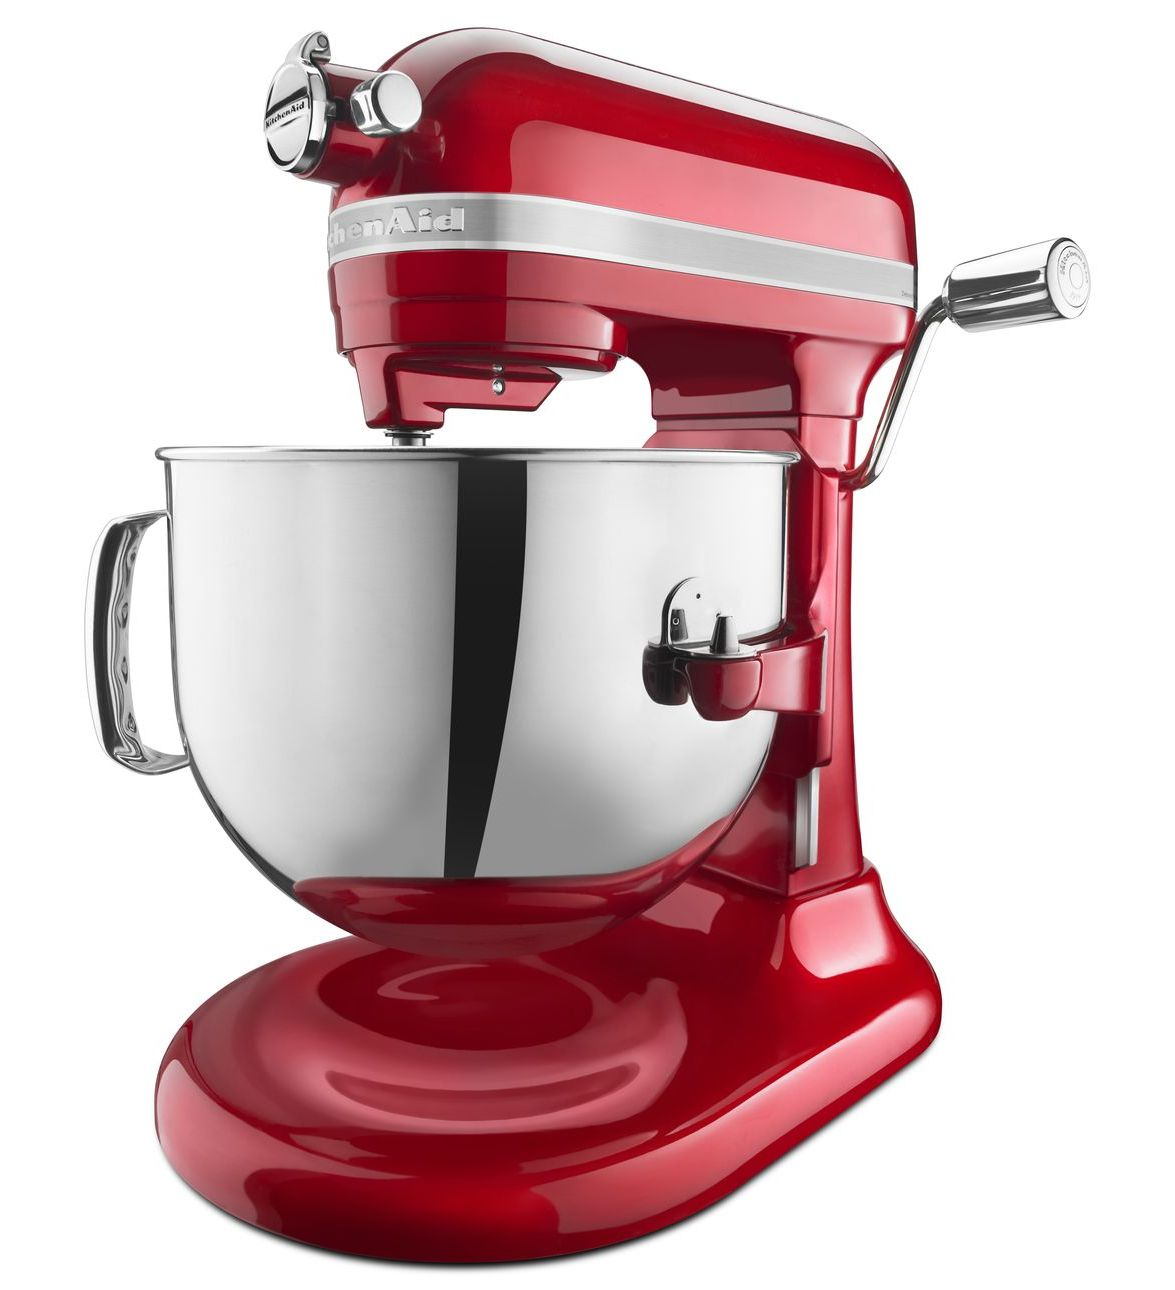 Kitchenaid Pro Line 7 Qt Stand Mixer Candy Le Red